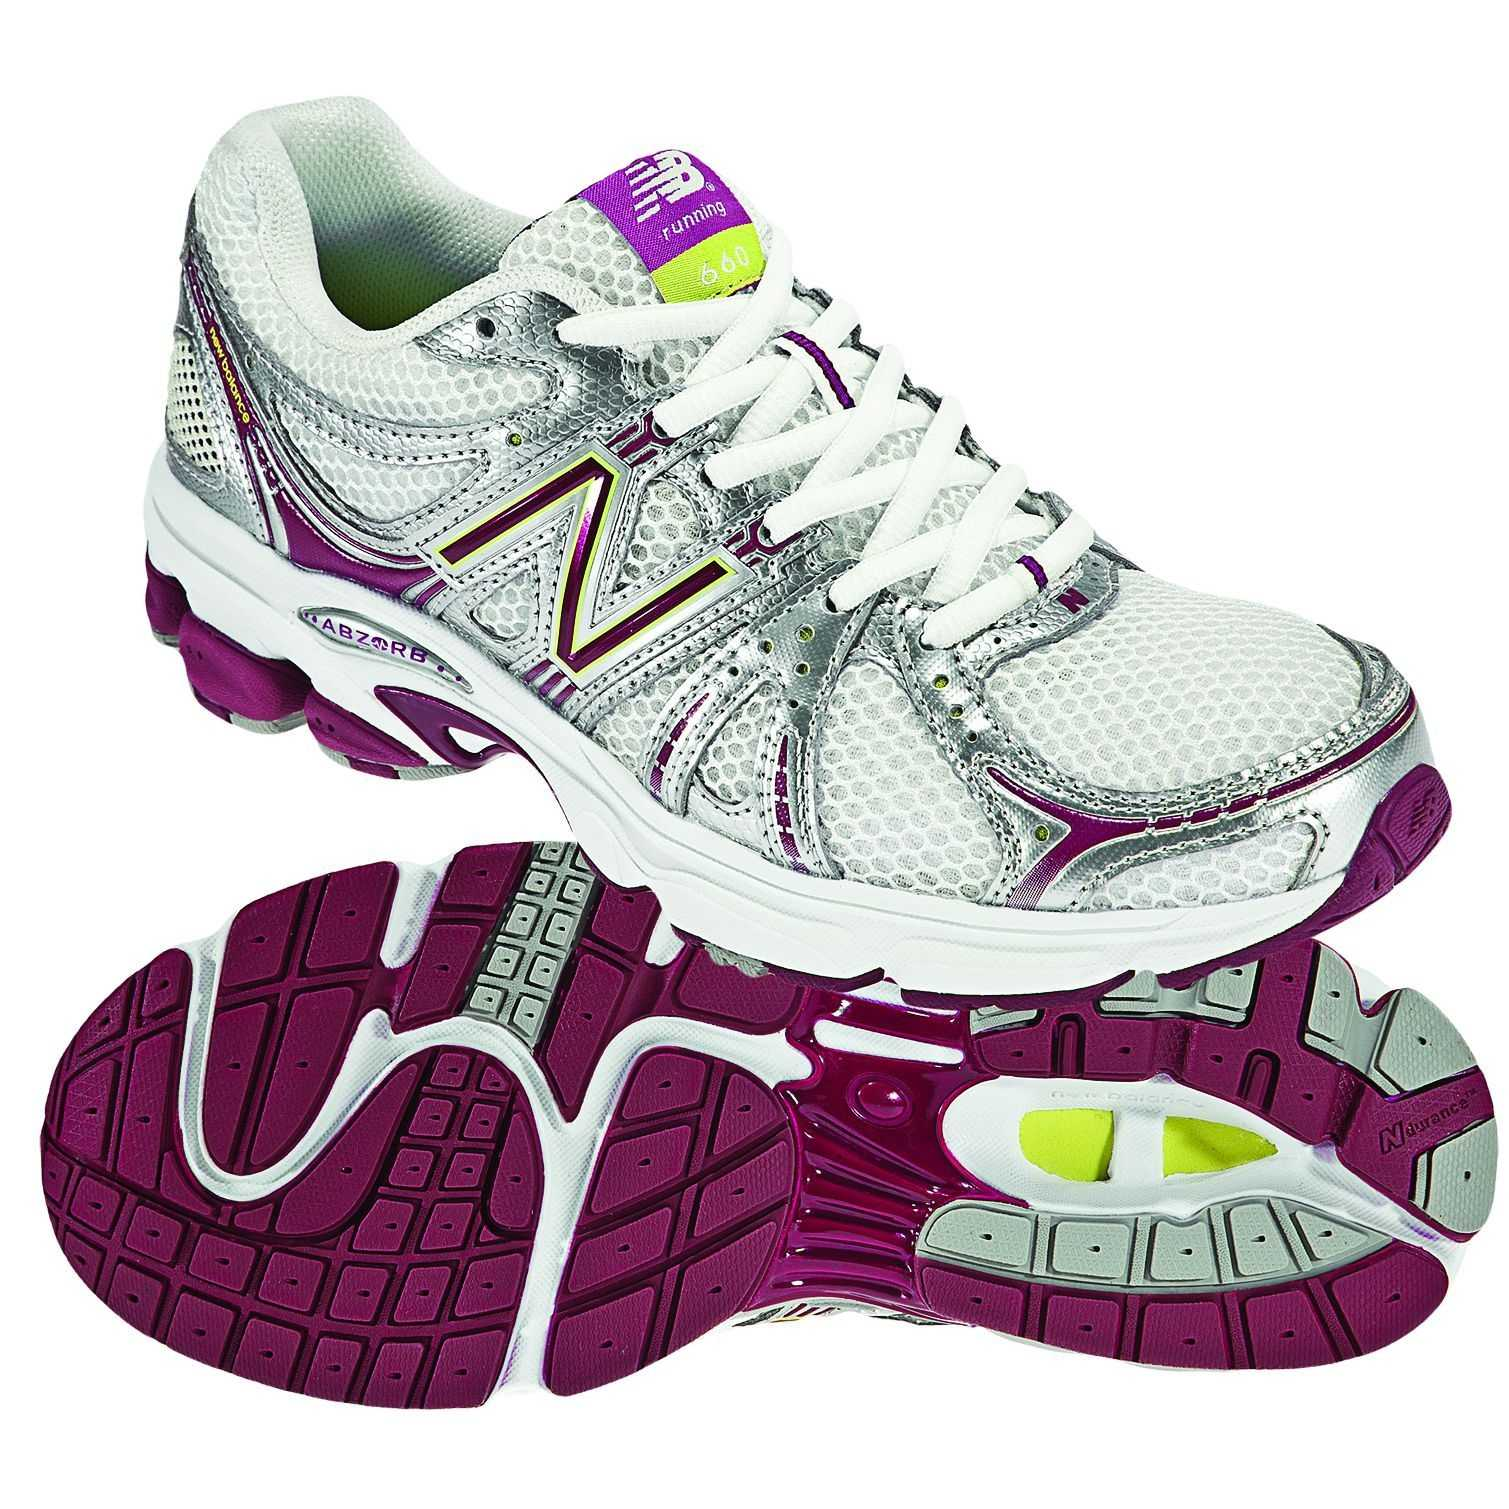 New Balance 660 Womens Running Shoes Sweatband